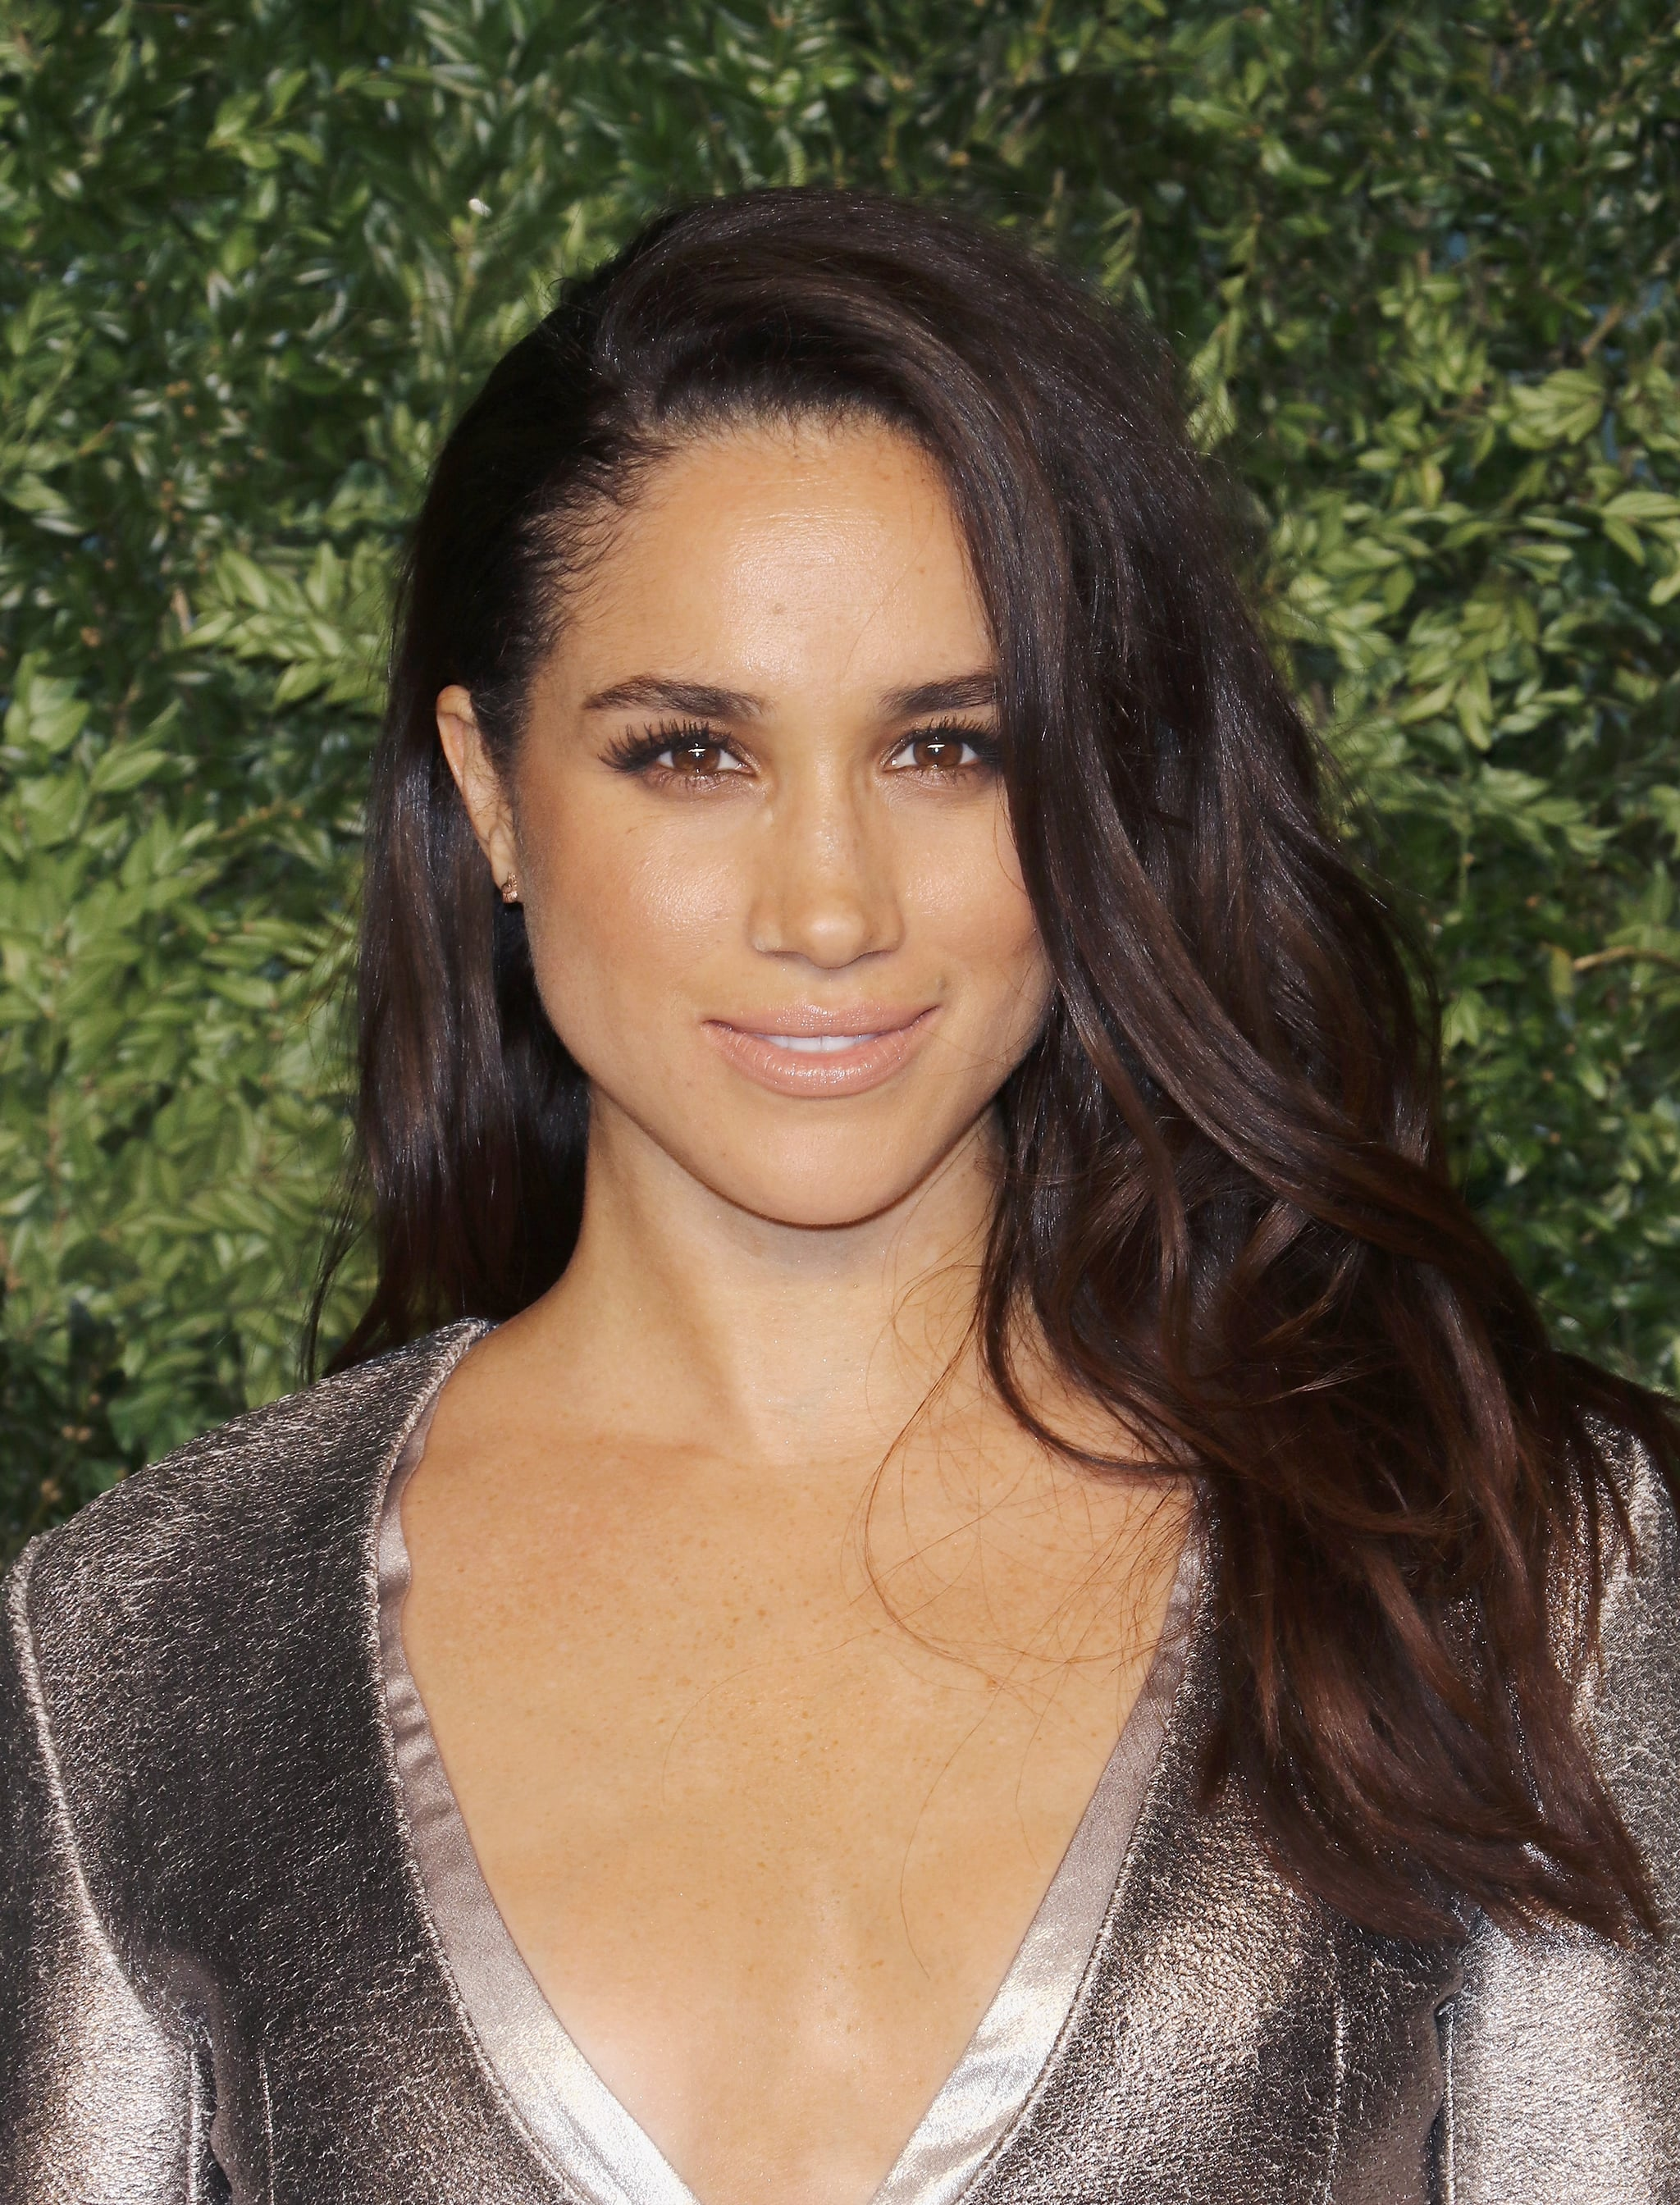 Meghan Markle Quotes About Being Biracial March 2017 ...